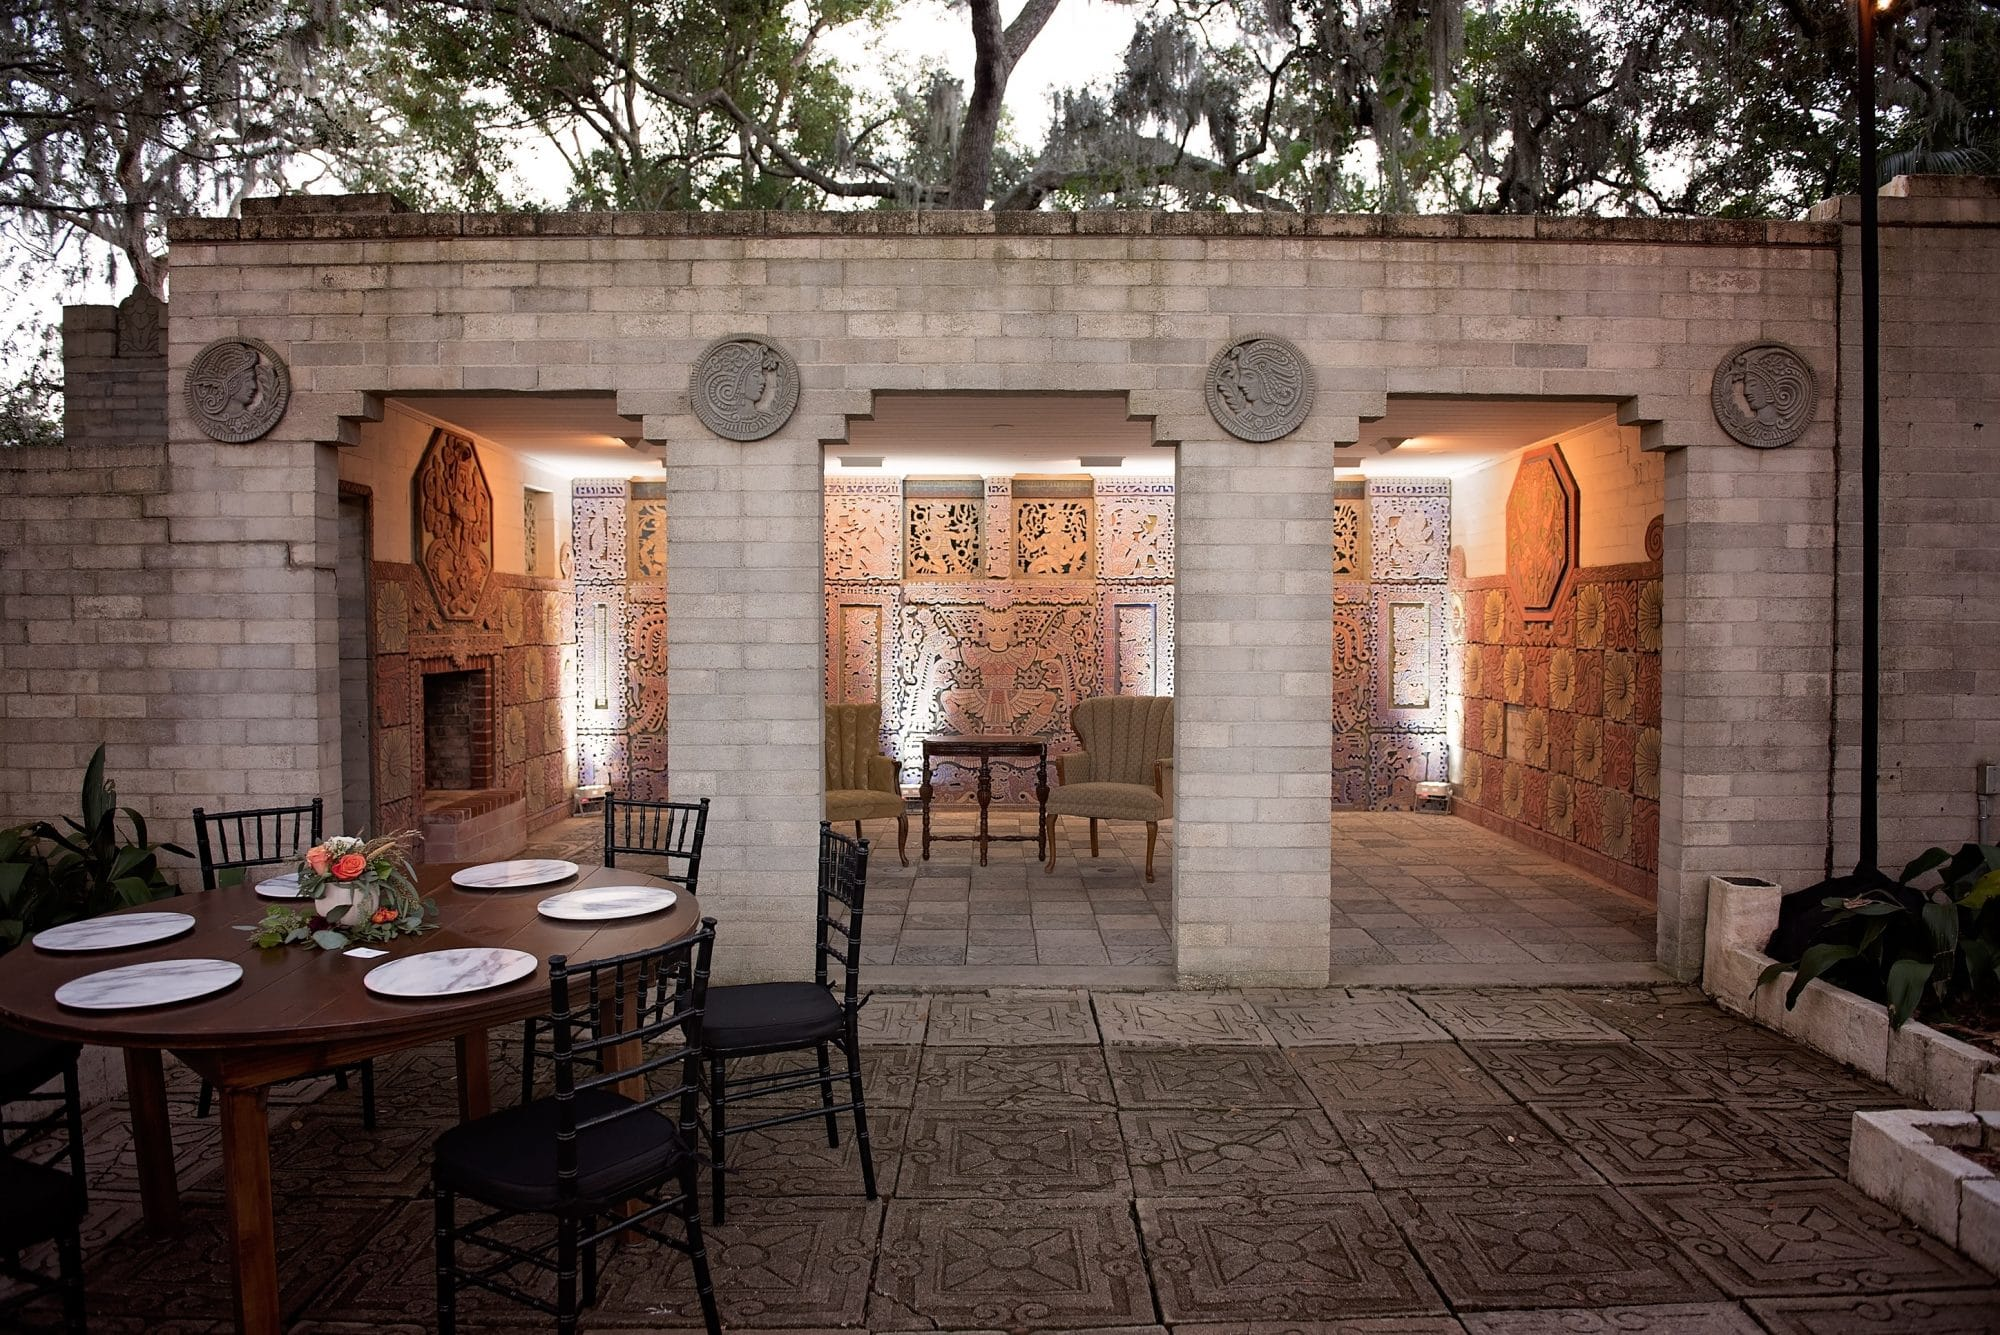 Maitland Art and History Museums - Mayan-inspired pavilion in courtyard reception spot